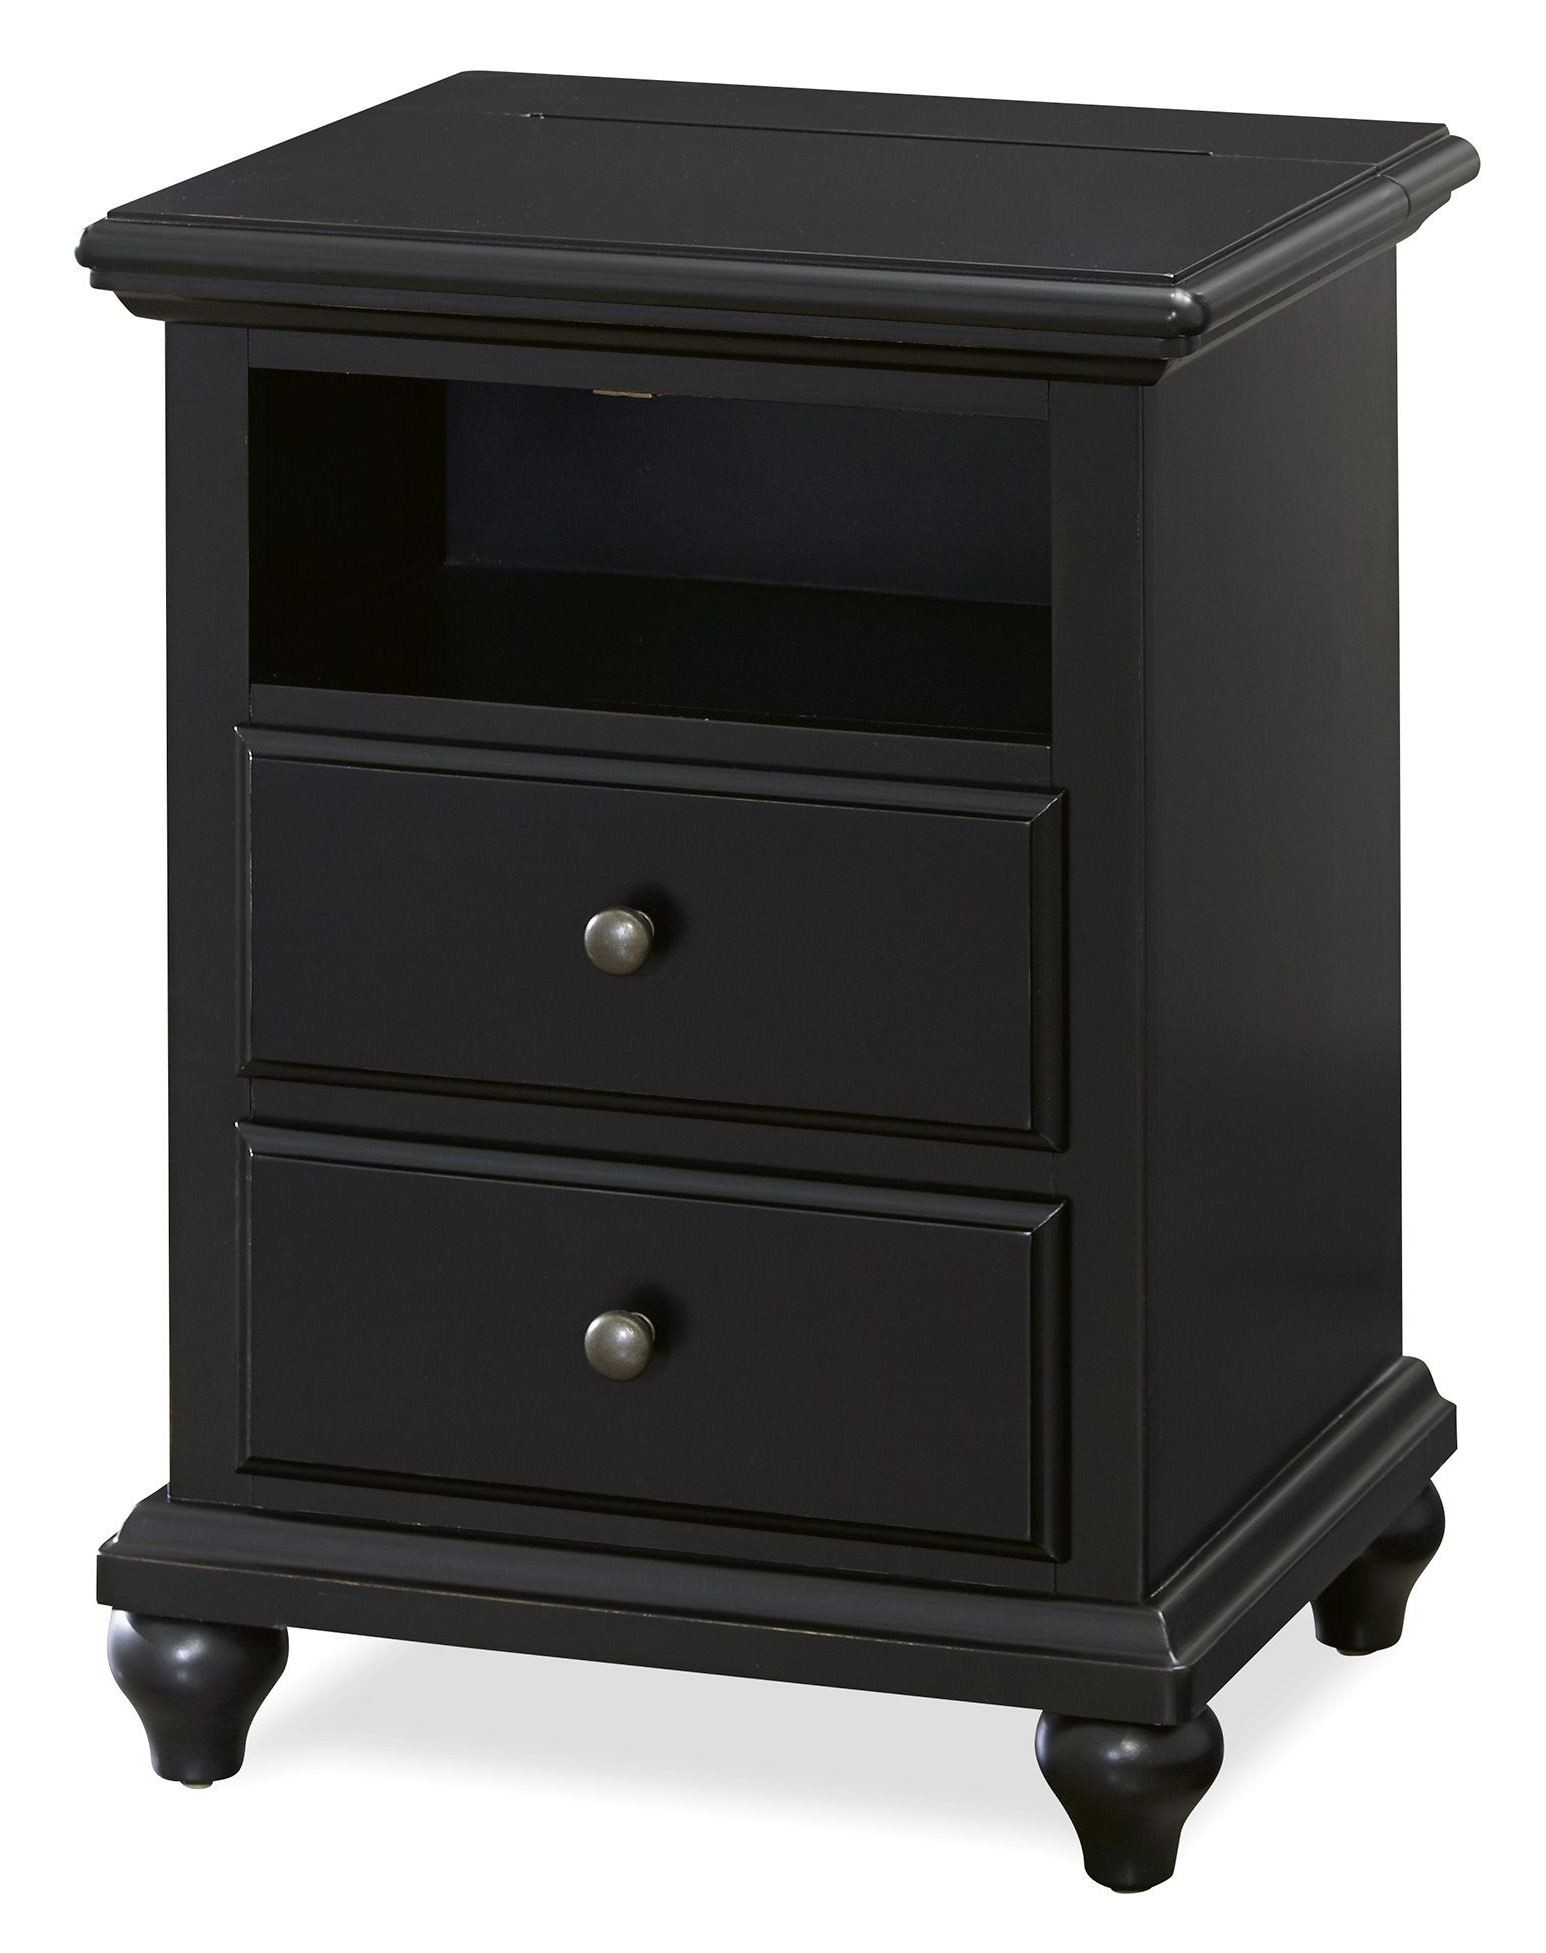 #595E72  Black Nightstand From Smart Stuff (437B080) Coleman Furniture with 1546x1953 px of Most Effective Black Nightstand And Dresser 19531546 wallpaper @ avoidforclosure.info